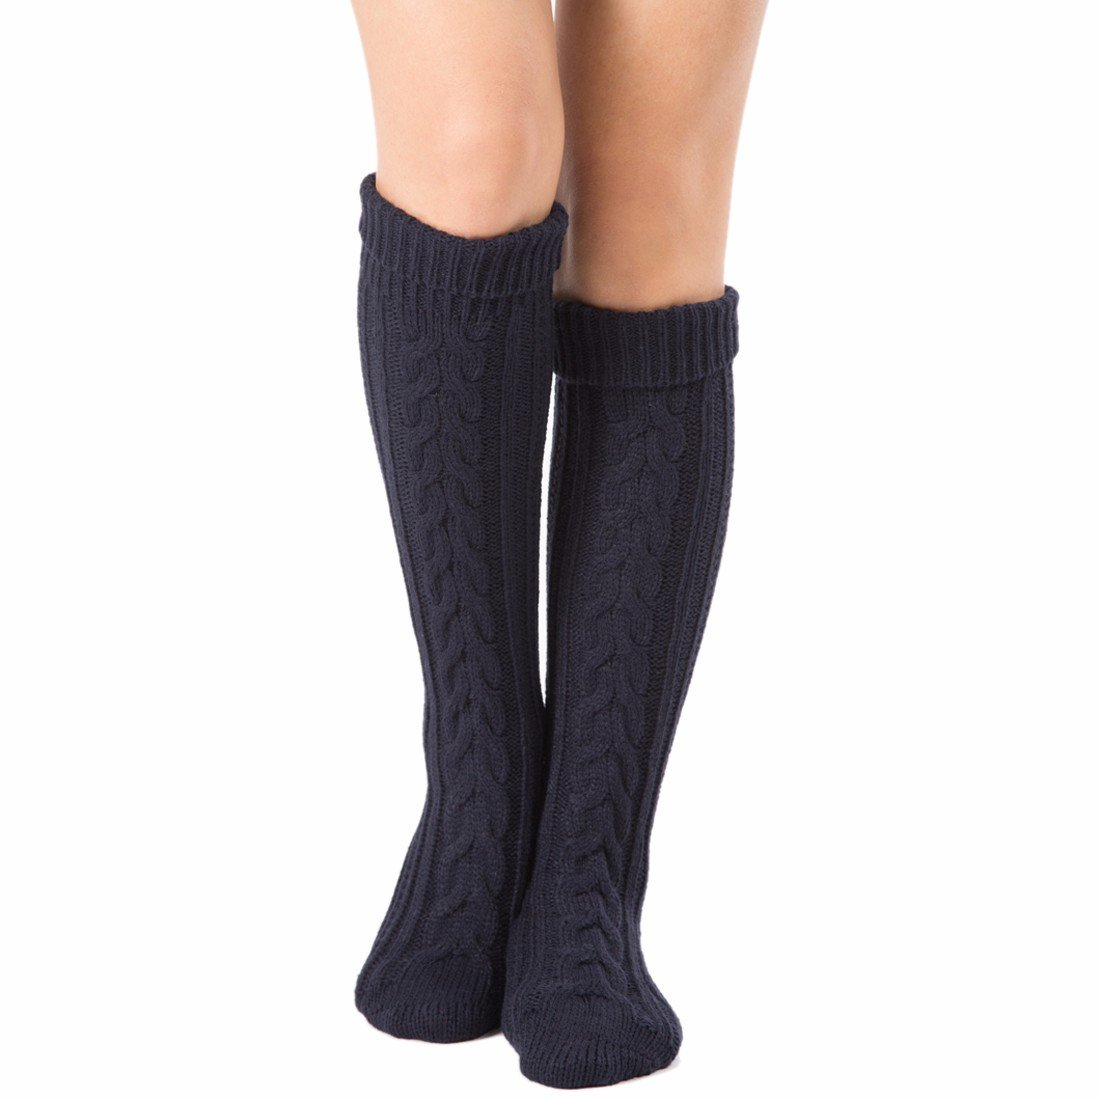 QIYUN.Z 2018 Fashion Unisex Minimalism Knit Knee-high Extra Long boot Socks E3097S0023/1ONE